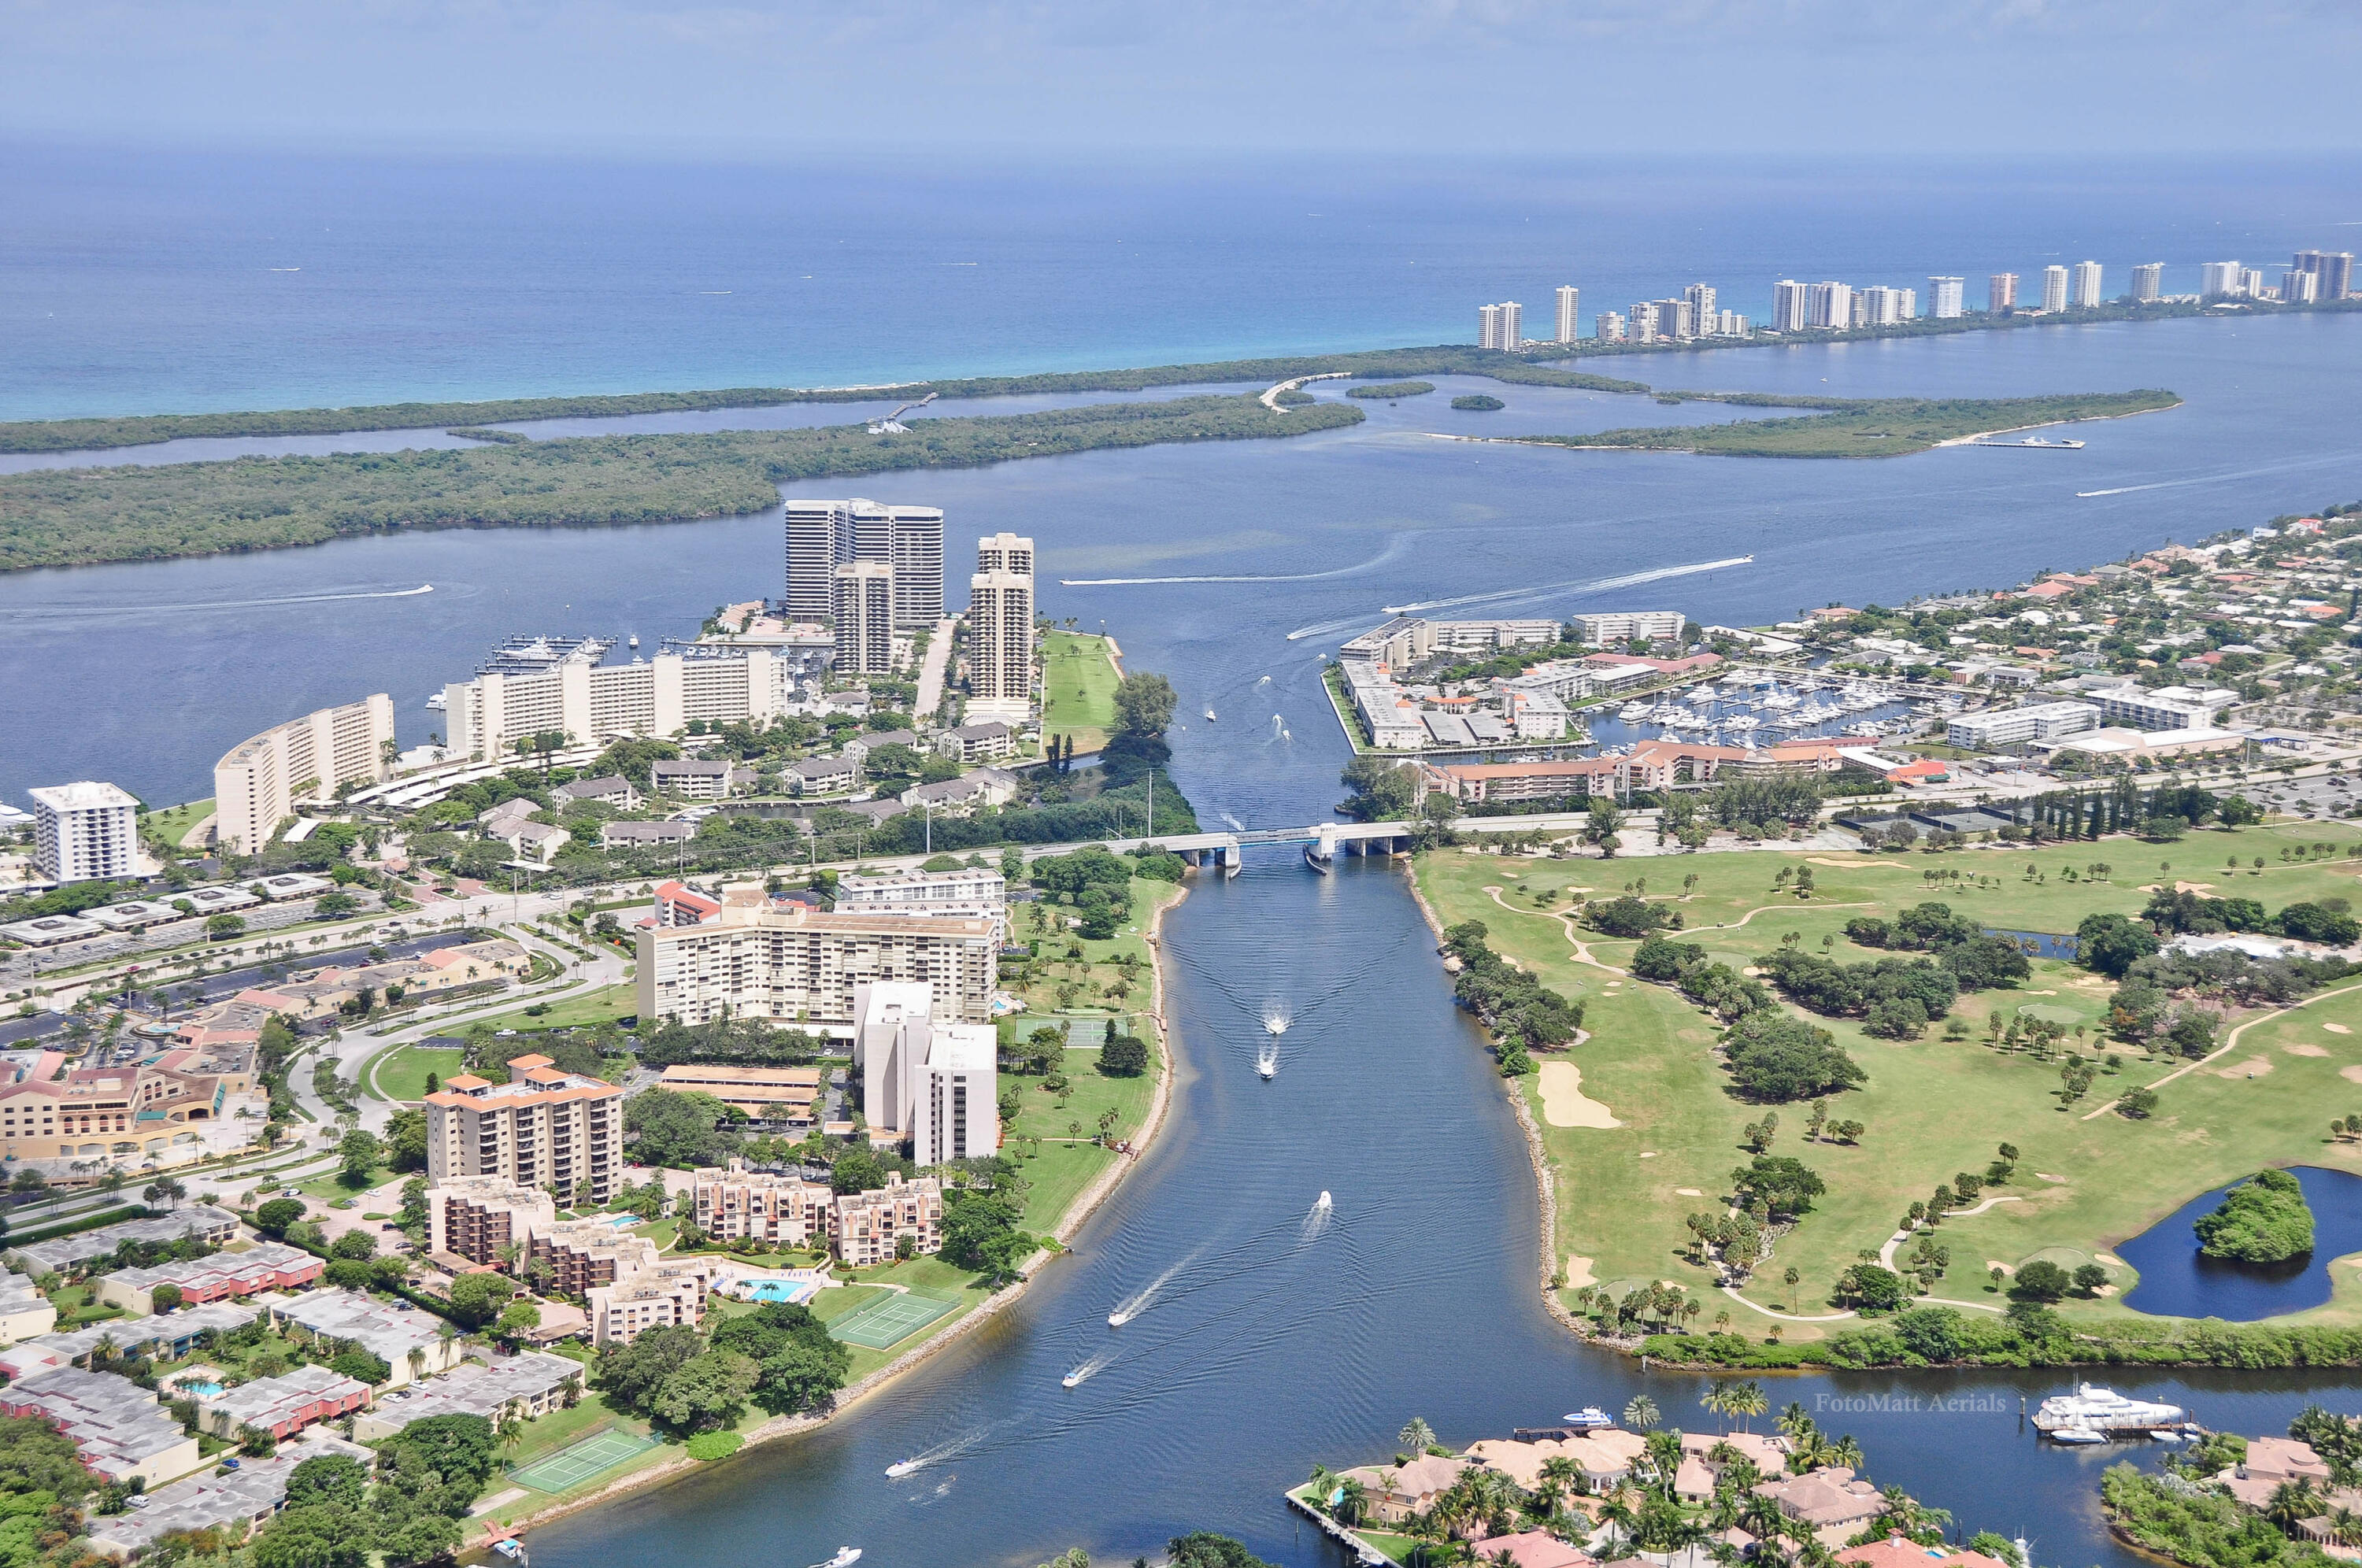 364 Golfview Road 207, North Palm Beach, Florida 33408, 3 Bedrooms Bedrooms, ,2 BathroomsBathrooms,A,Condominium,Golfview,RX-10716266